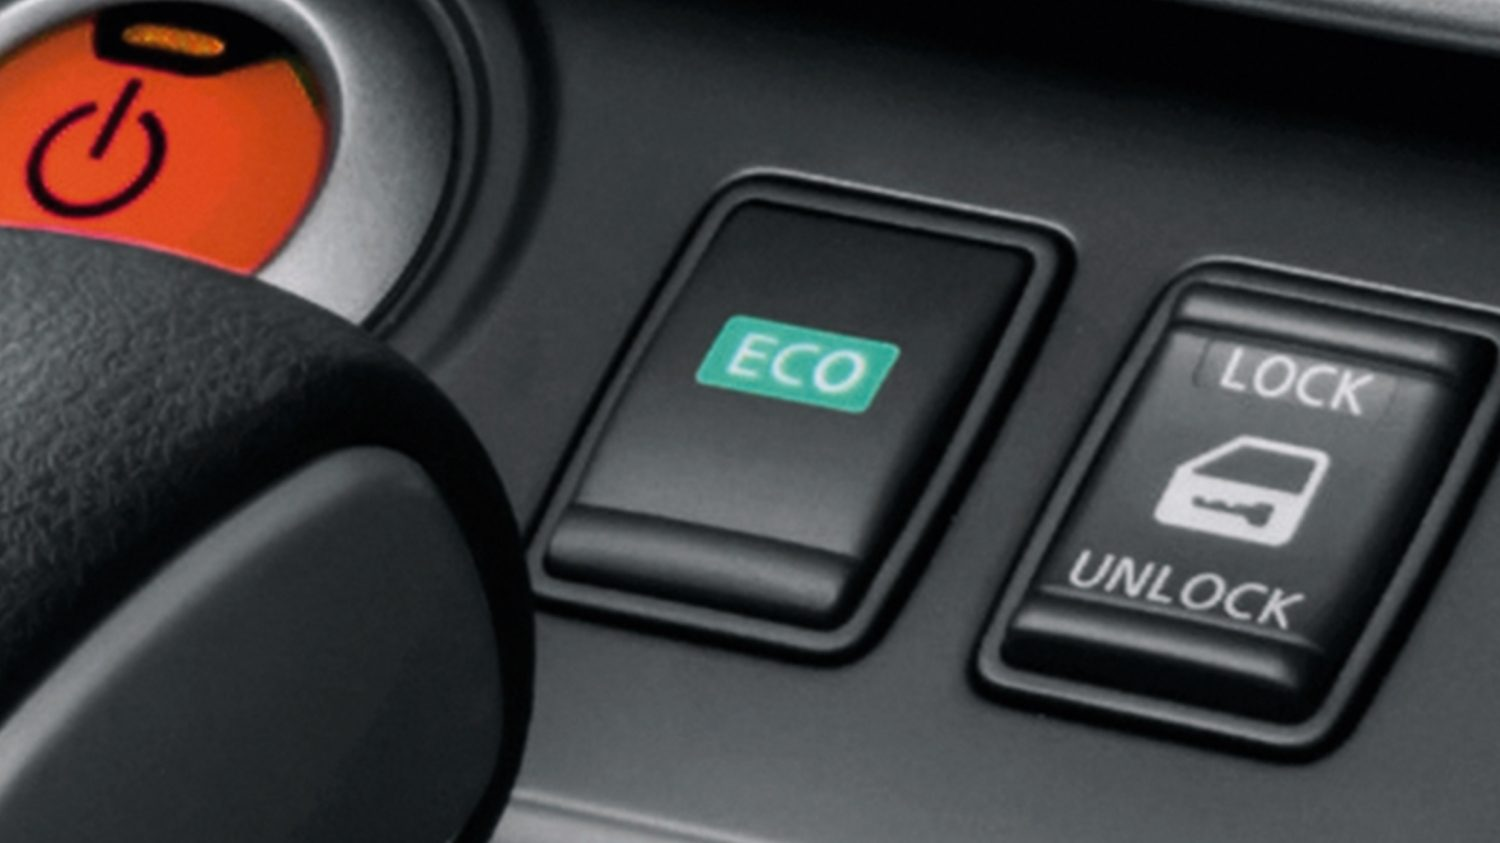 Detail afbeelding Nissan e-NV200 eco-modus knop